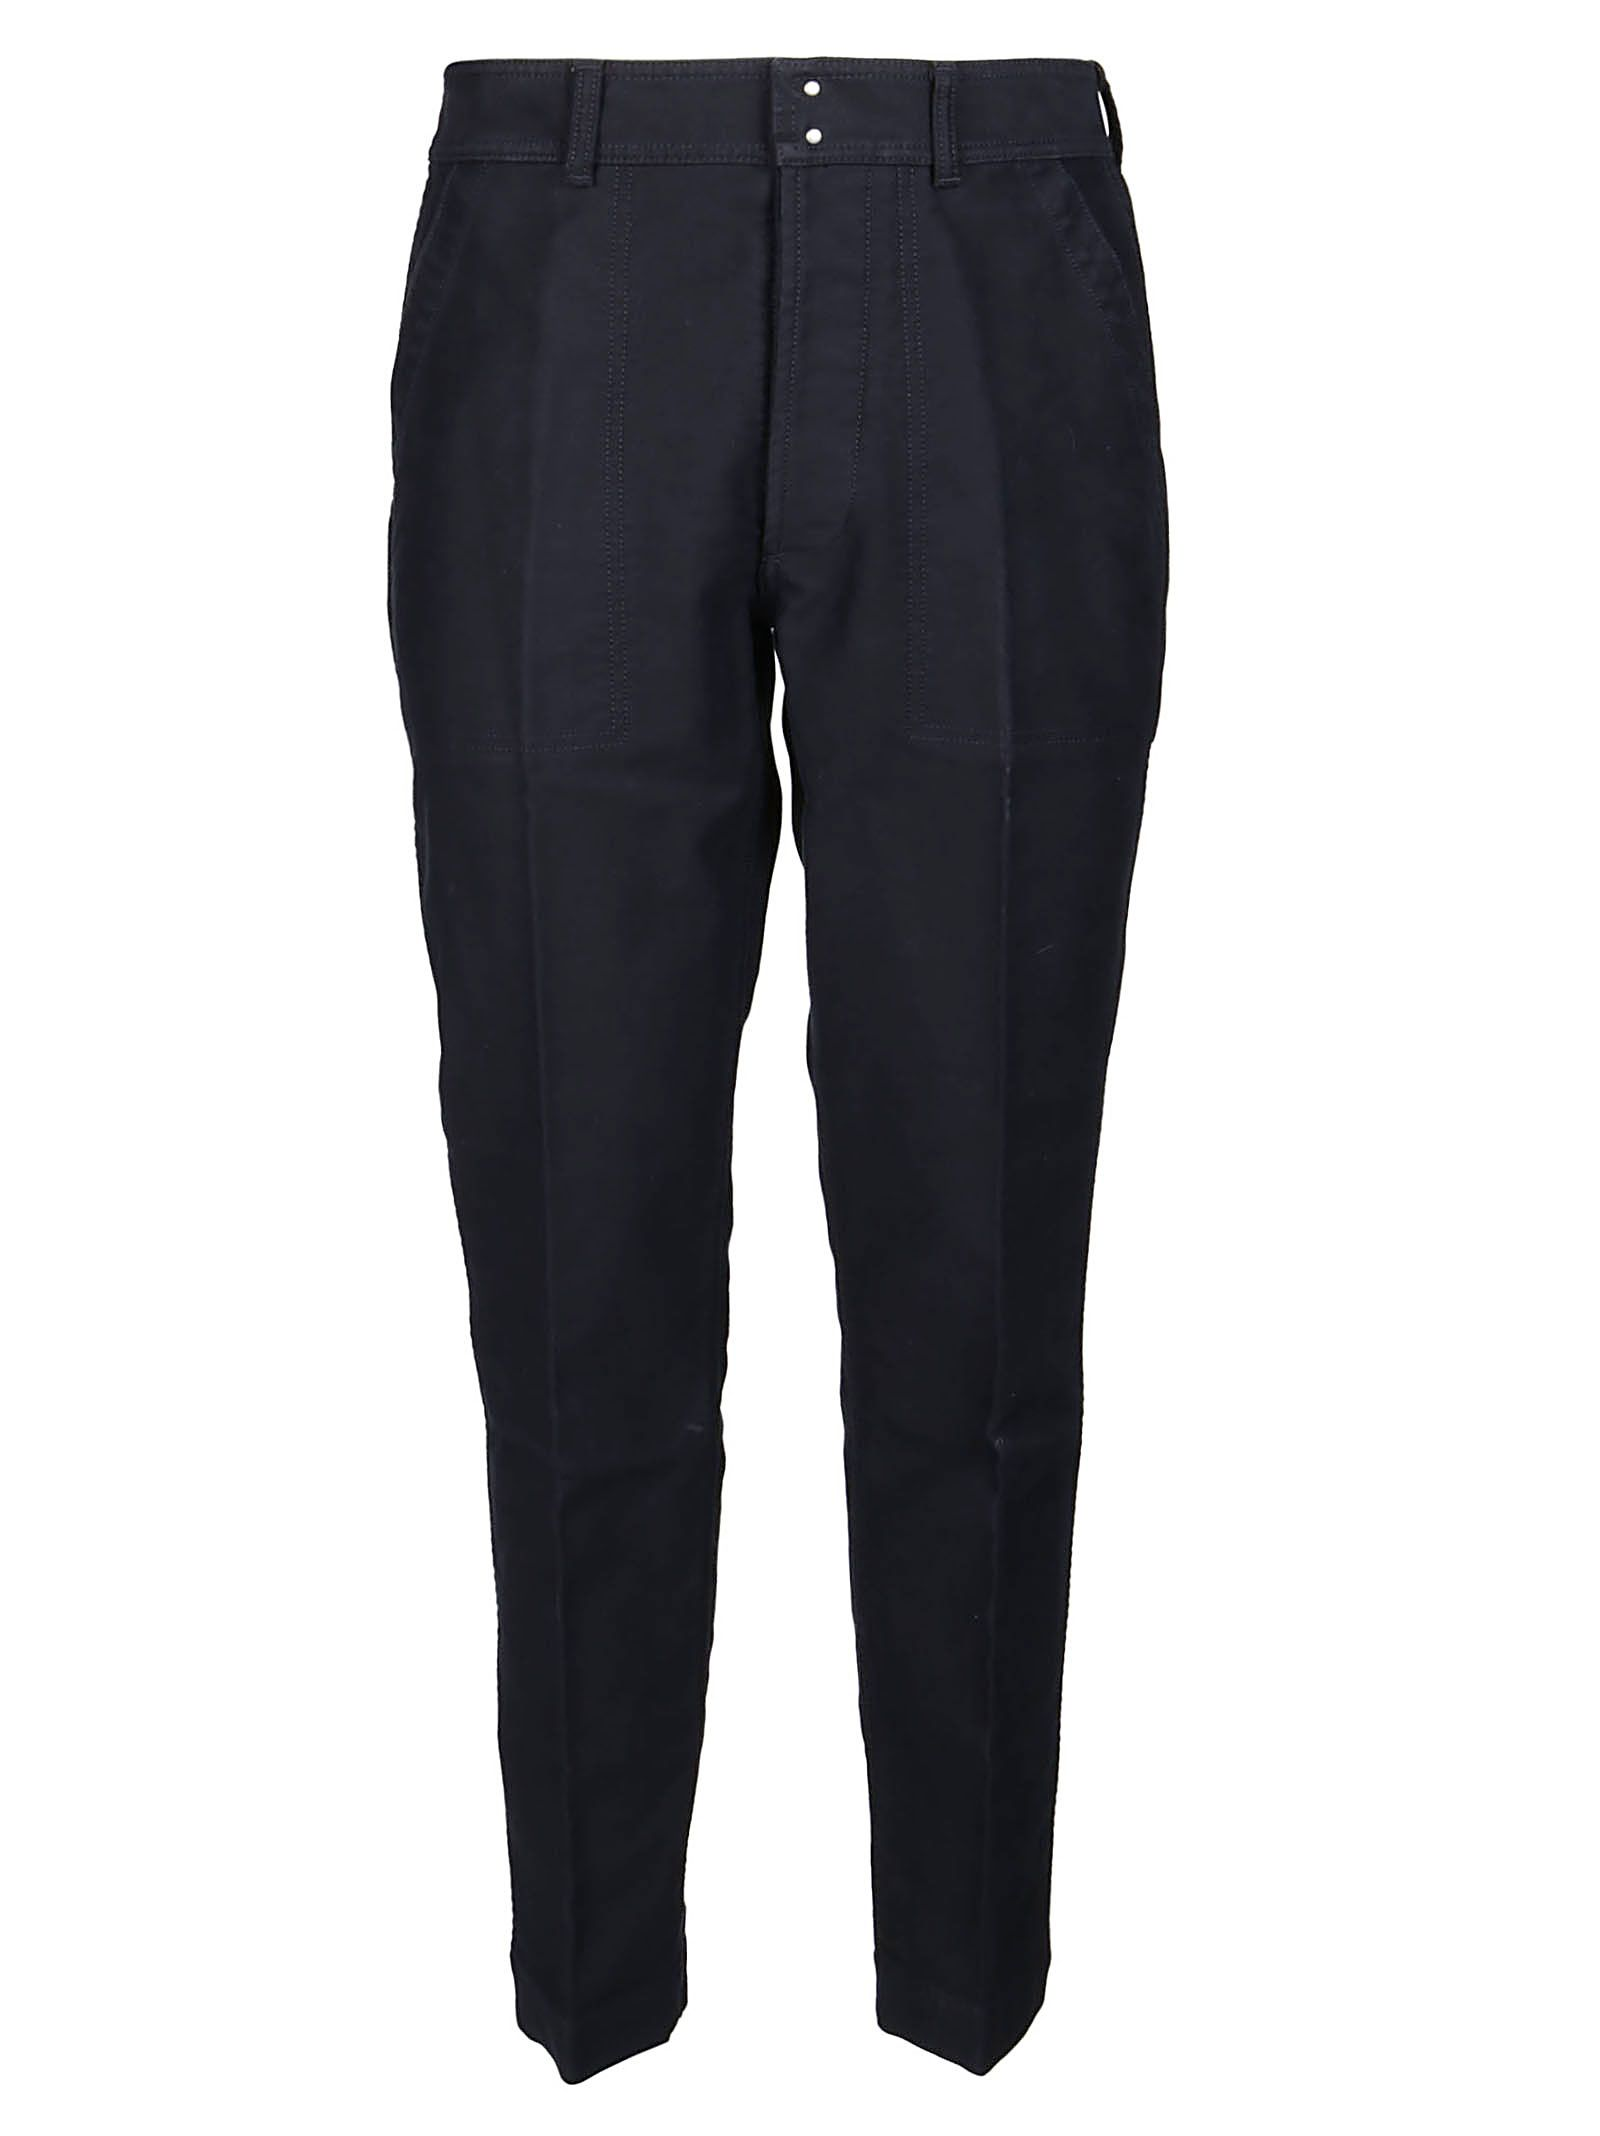 Tom Ford Cottons TOM FORD MEN'S BLUE COTTON PANTS